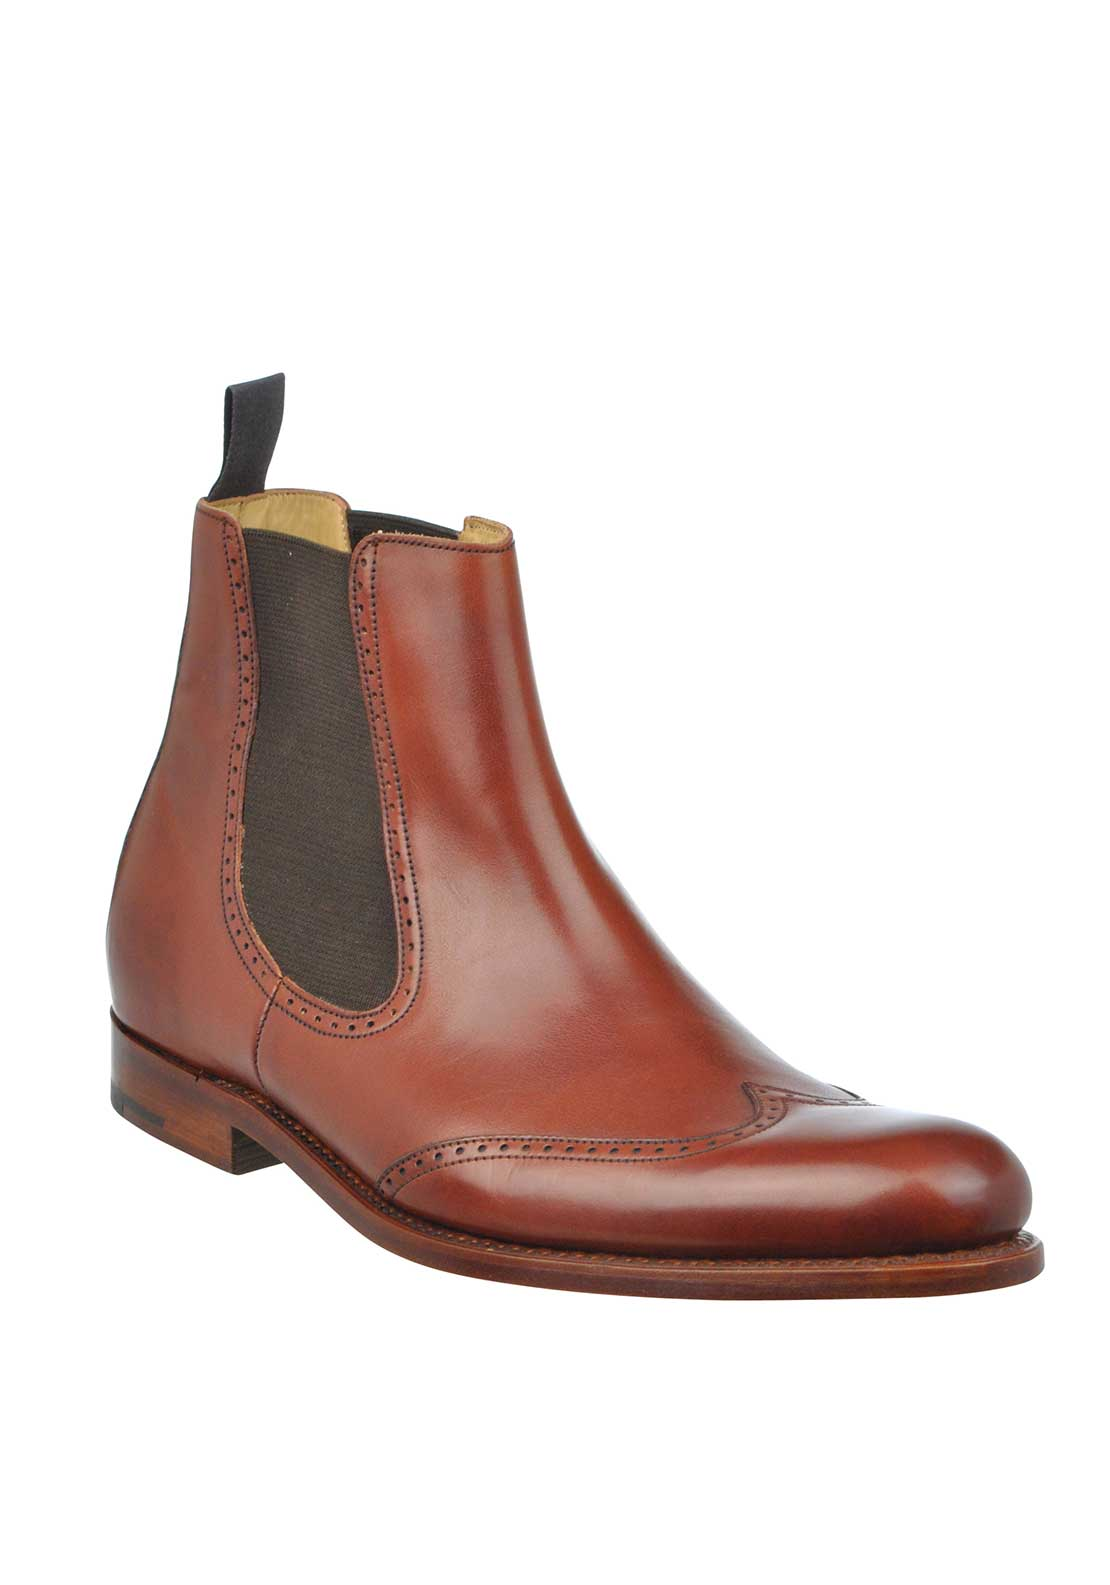 Barker Mens Luxembourg Chelsea Boots, Rosewood